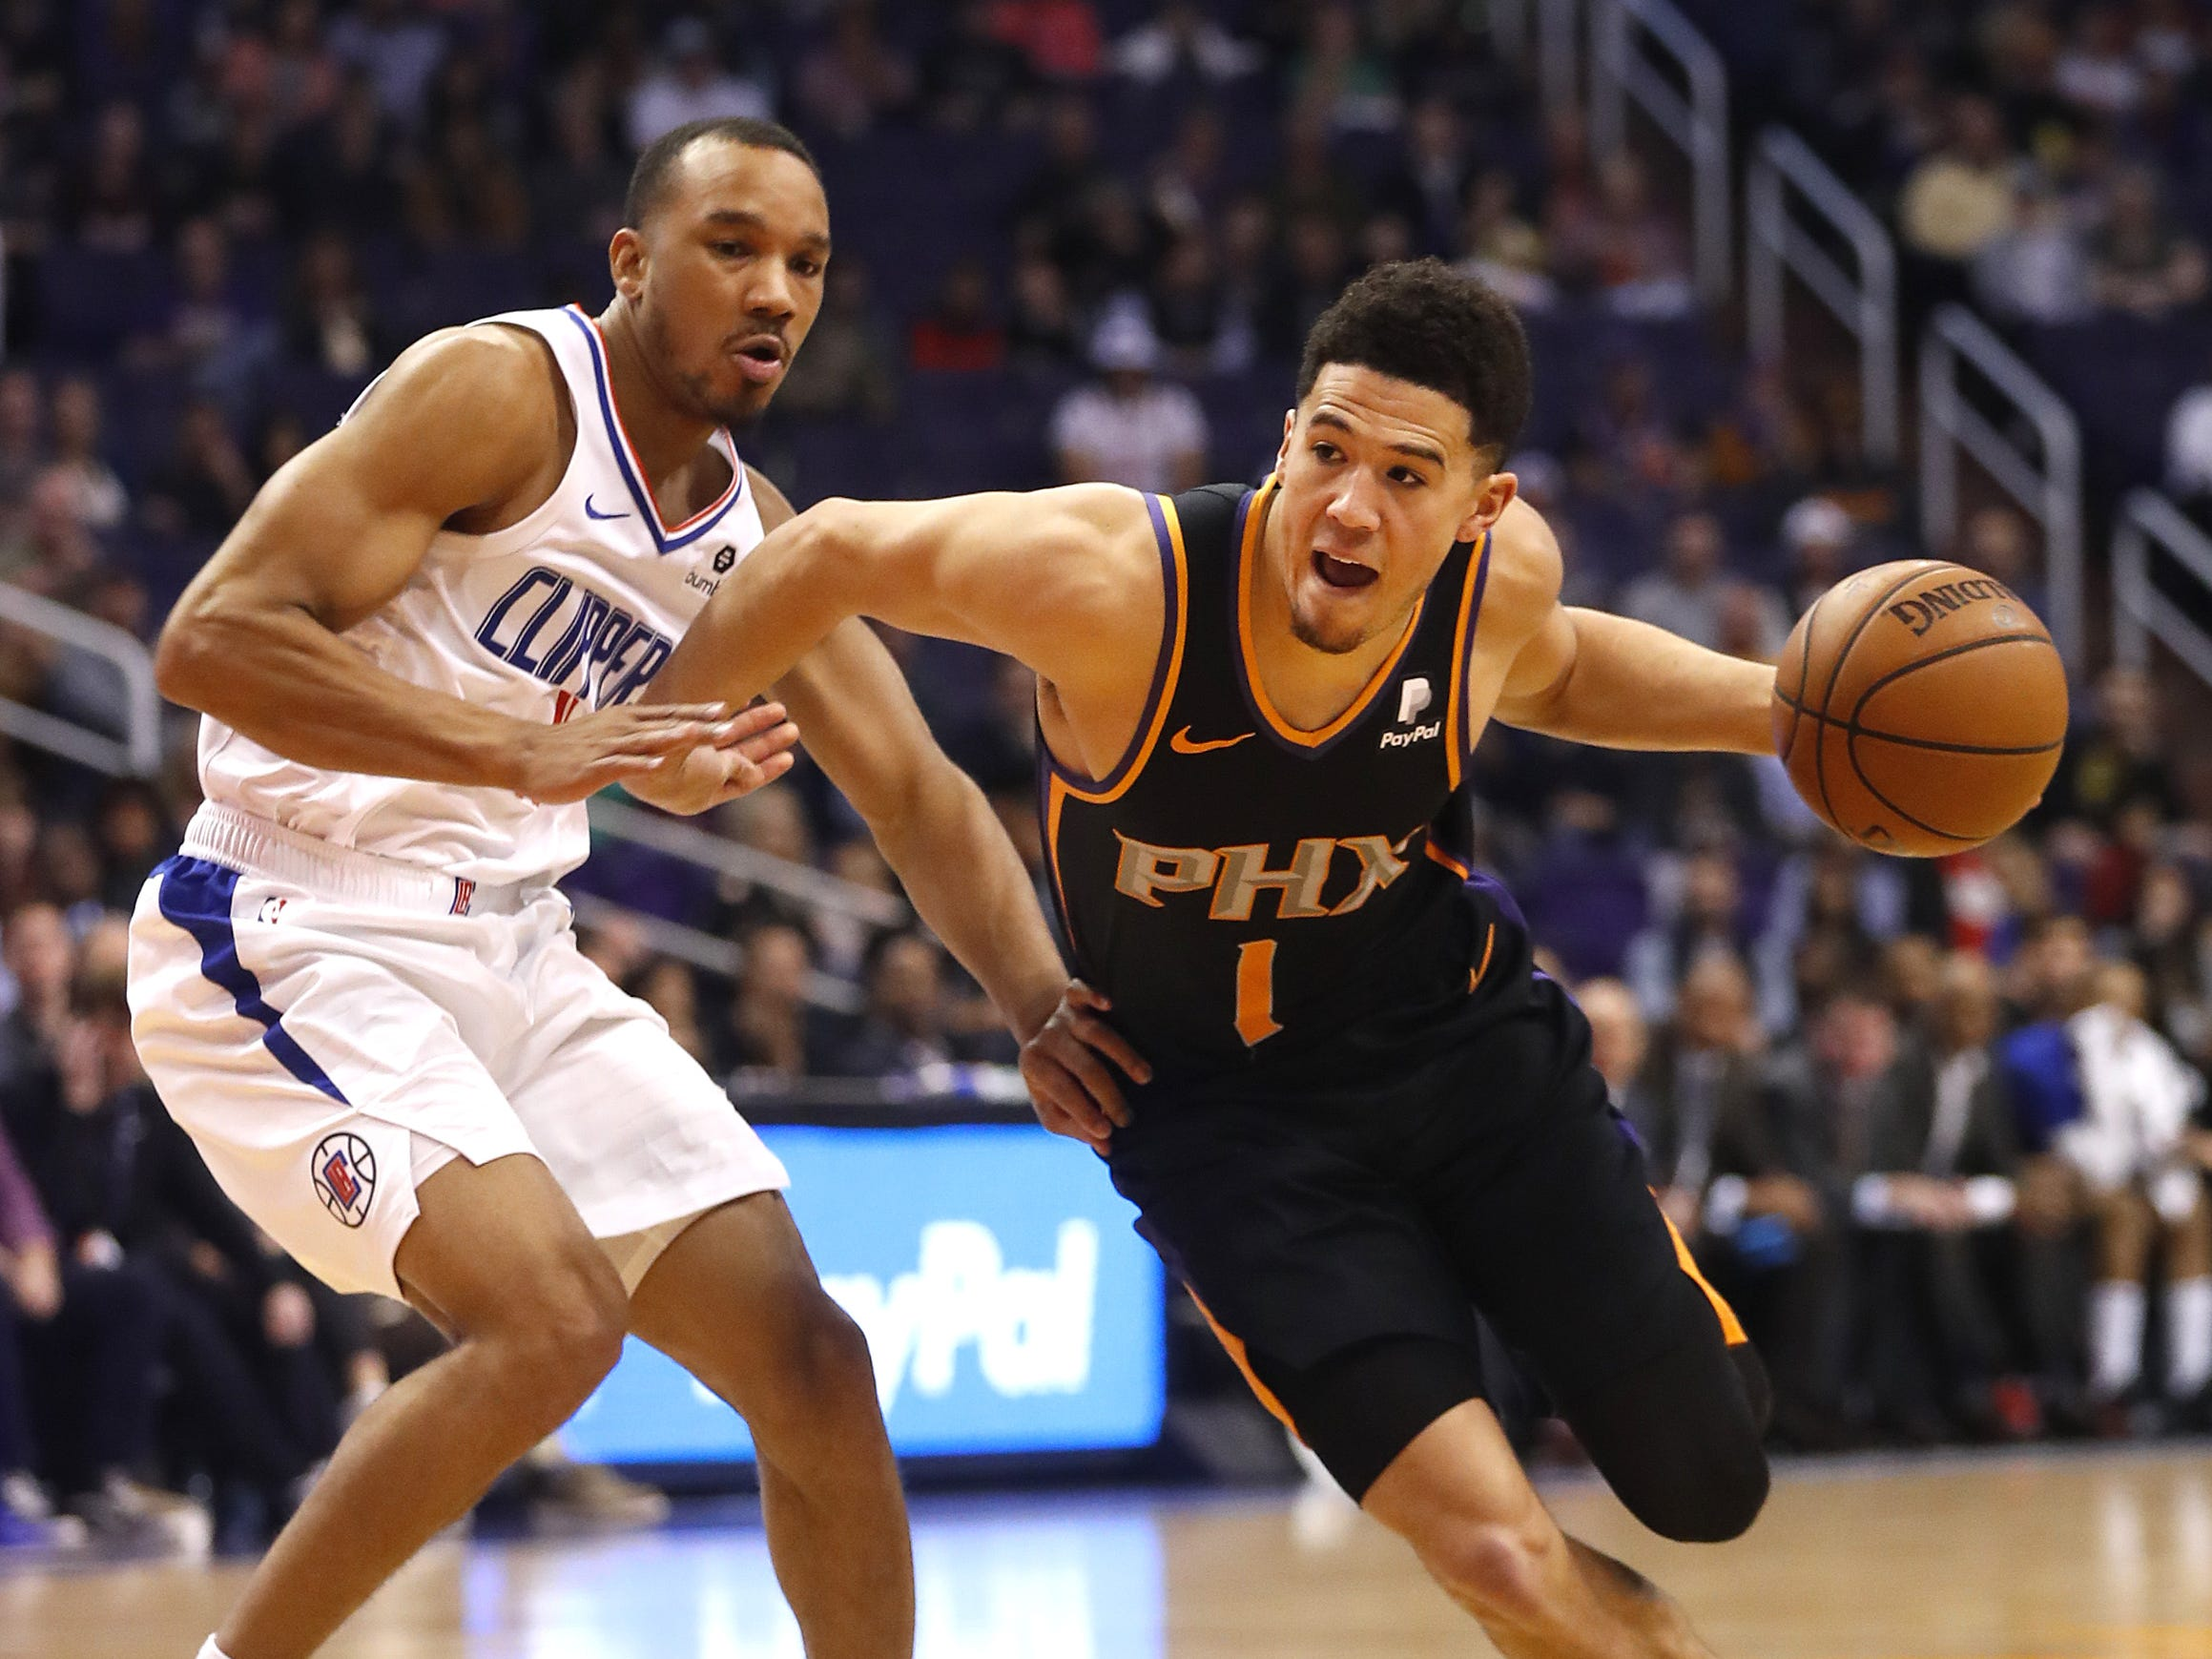 Suns' Devin Booker (1) drives the lane against Clippers' Avery Bradley (11) during the first half at Talking Stick Resort Arena in Phoenix, Ariz. on January 4, 2019.